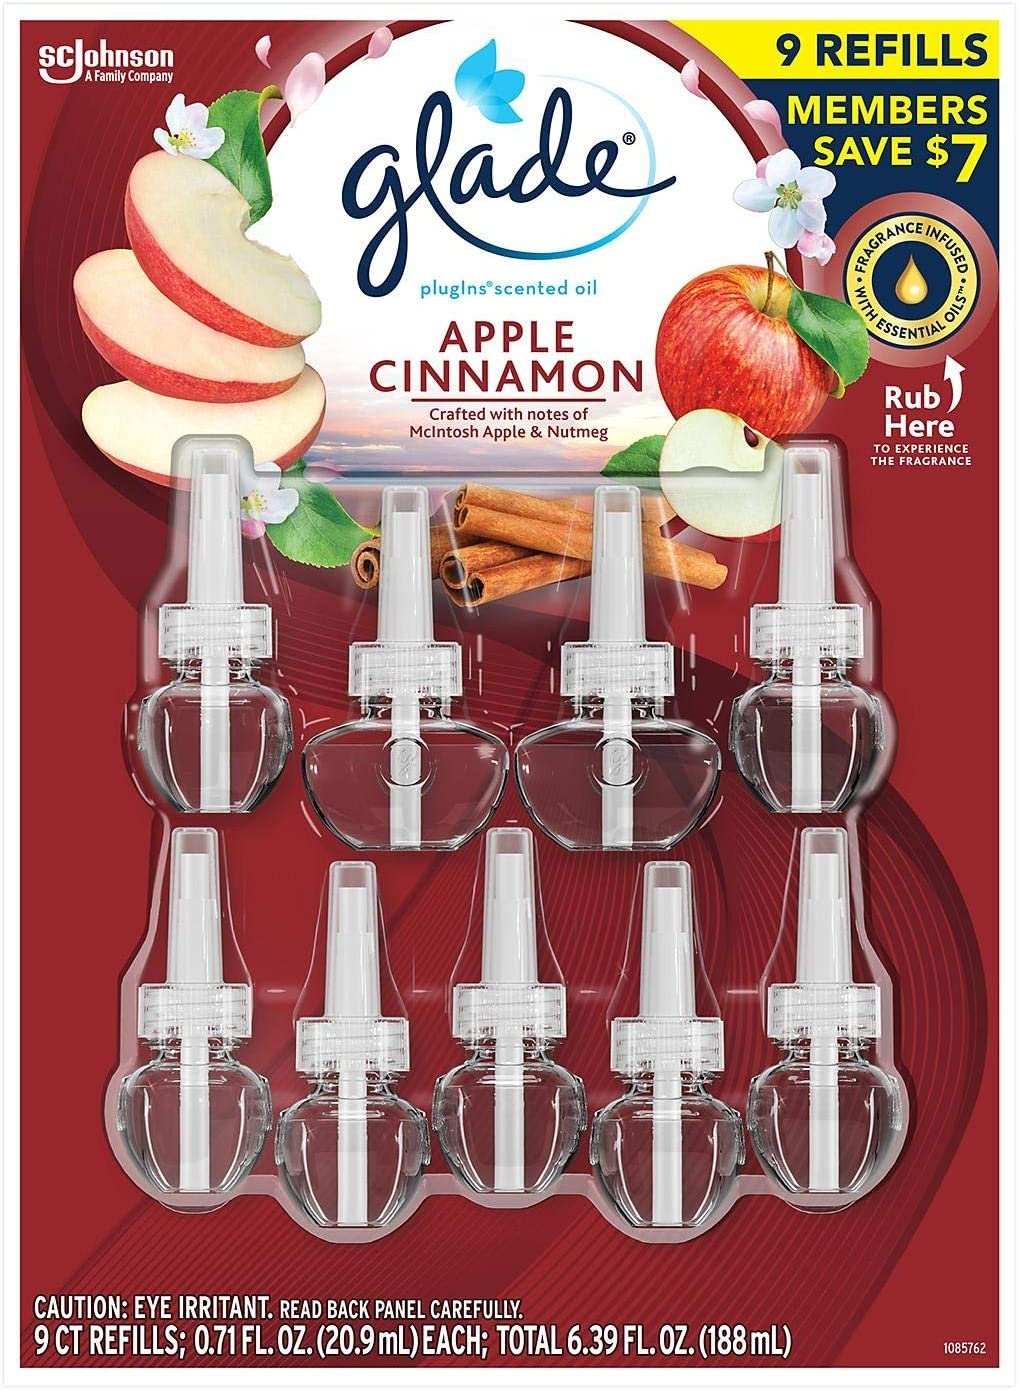 Glade PlugIns Scented Oil Refill, Essential Oil Infused Wall Plug in, 6.39 fl. oz, 9 ct. (Apple Cinnamon)